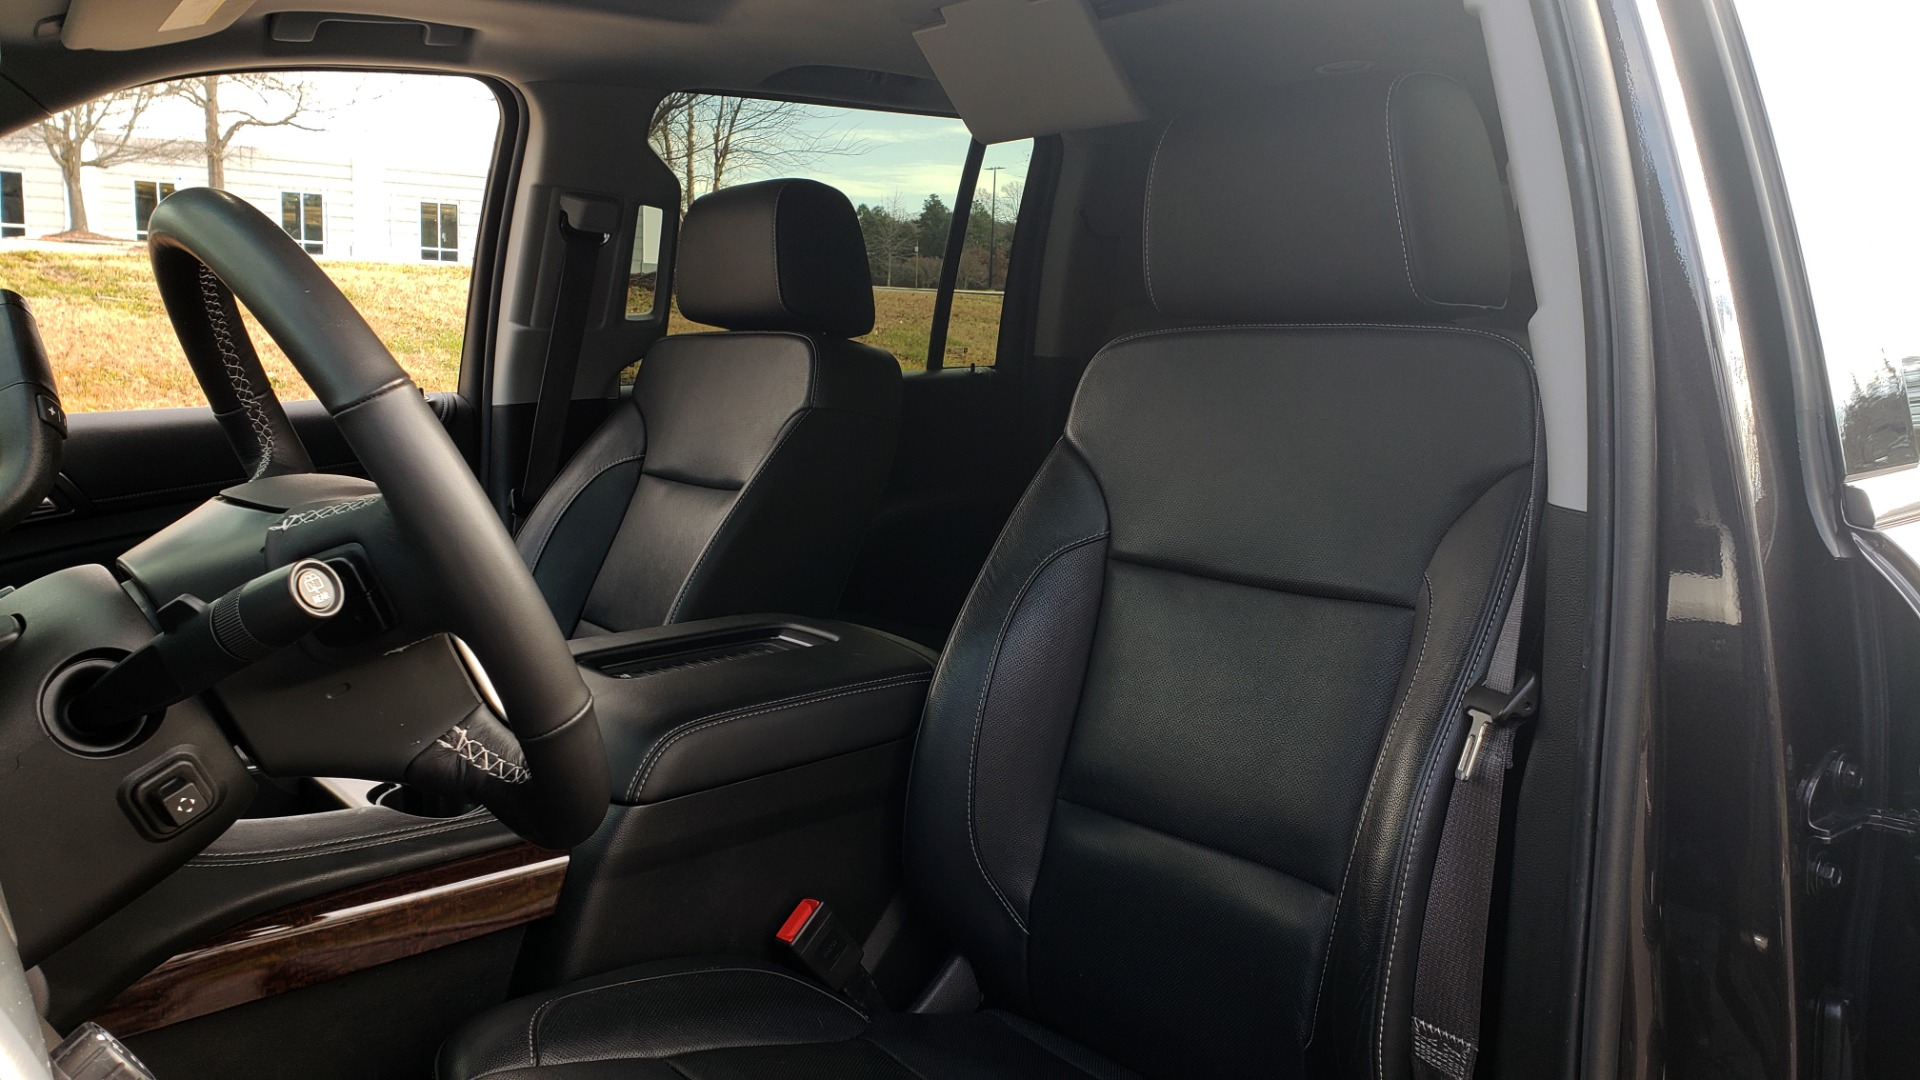 Used 2017 GMC YUKON XL SLT 4X4 / NAV / SUNROOF / BOSE / 3-ROW / REARVIEW for sale Sold at Formula Imports in Charlotte NC 28227 69